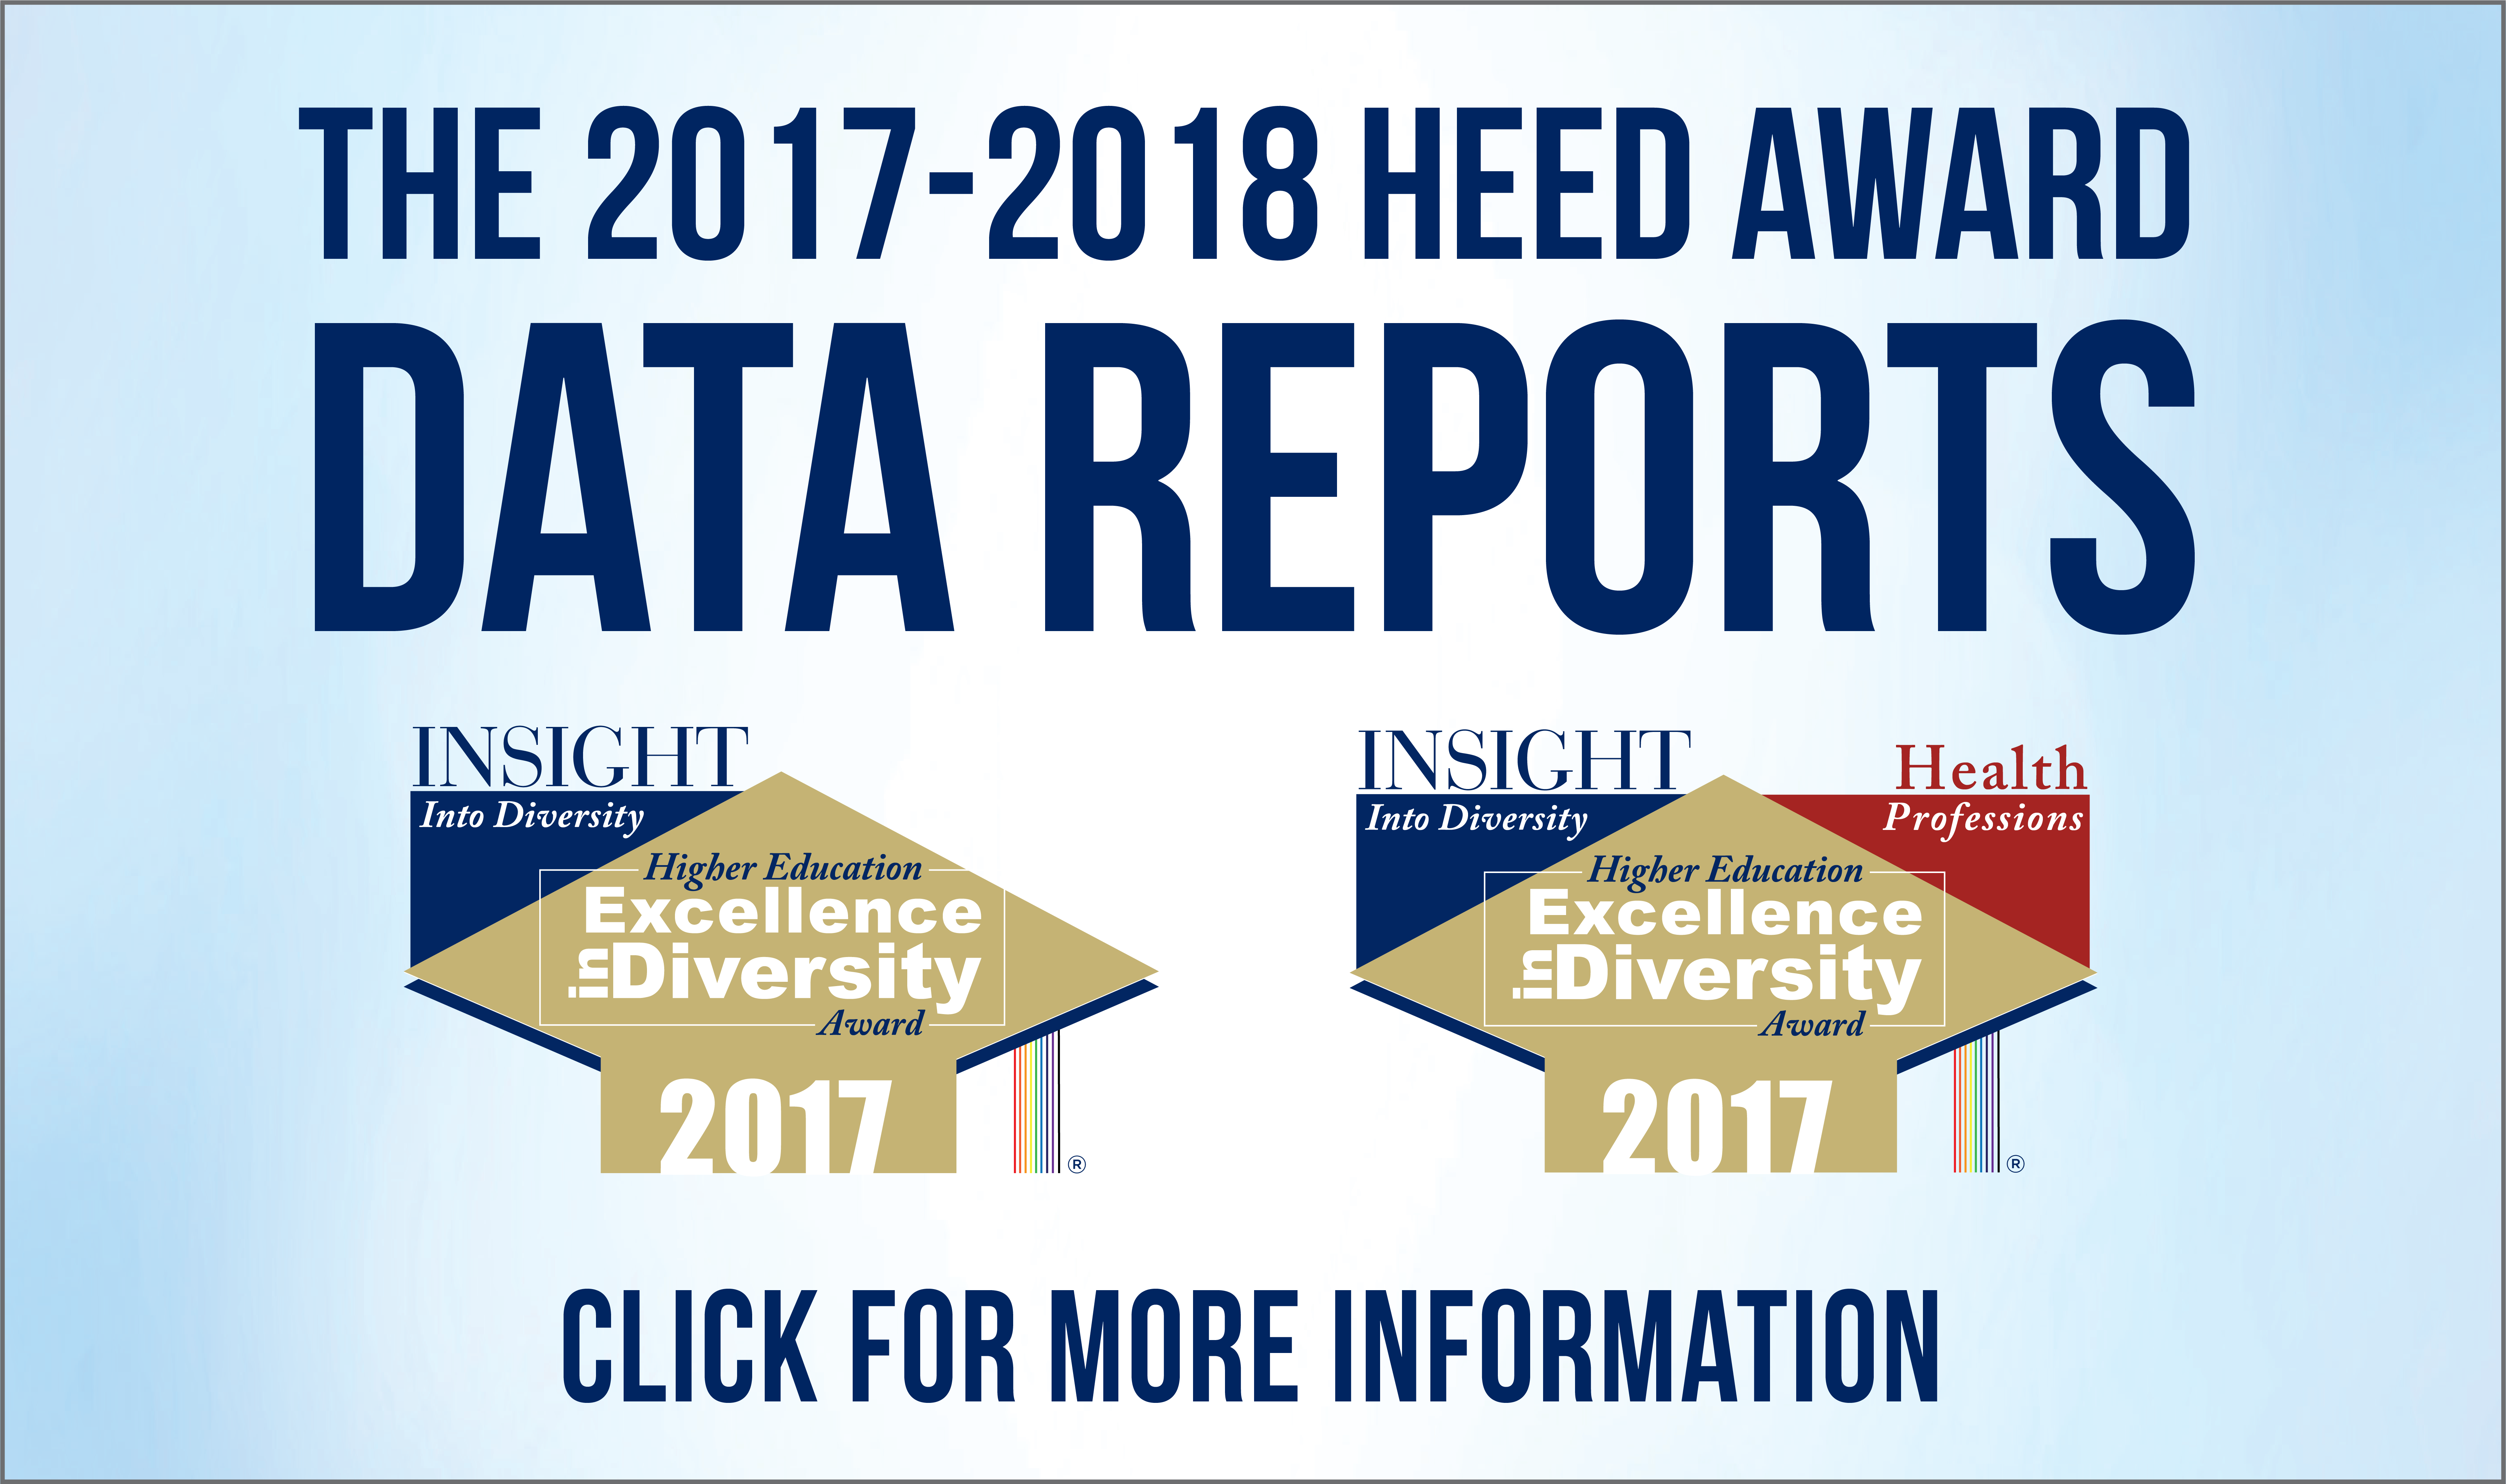 HEED Award Data Reports - Higher Education Excellence In Diversity - Insight Into Diversity